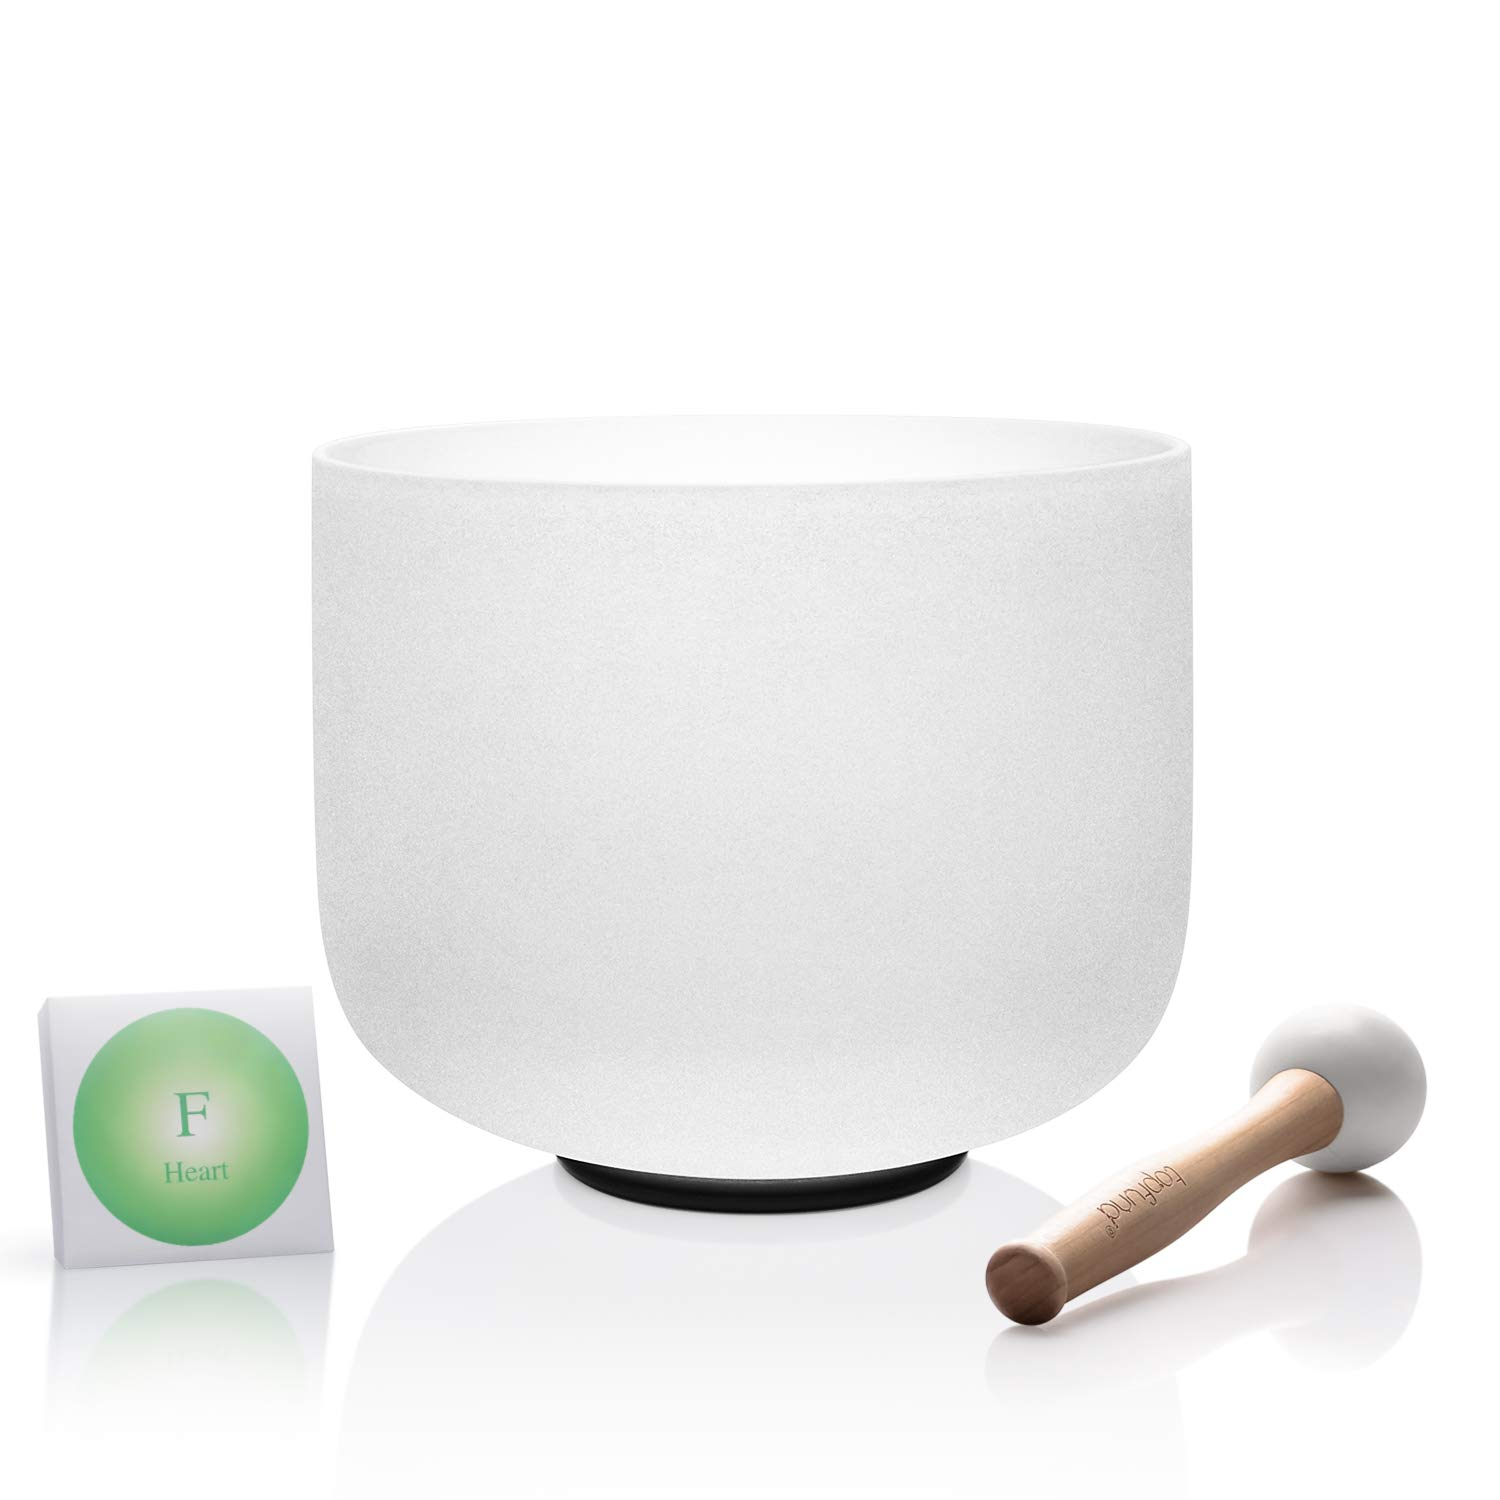 TOPFUND Quartz Crystal Singing Bowl 432hz Tuned F Note Heart Chakra 8 inch, O-ring and Rubber Mallet included by TOPFUND